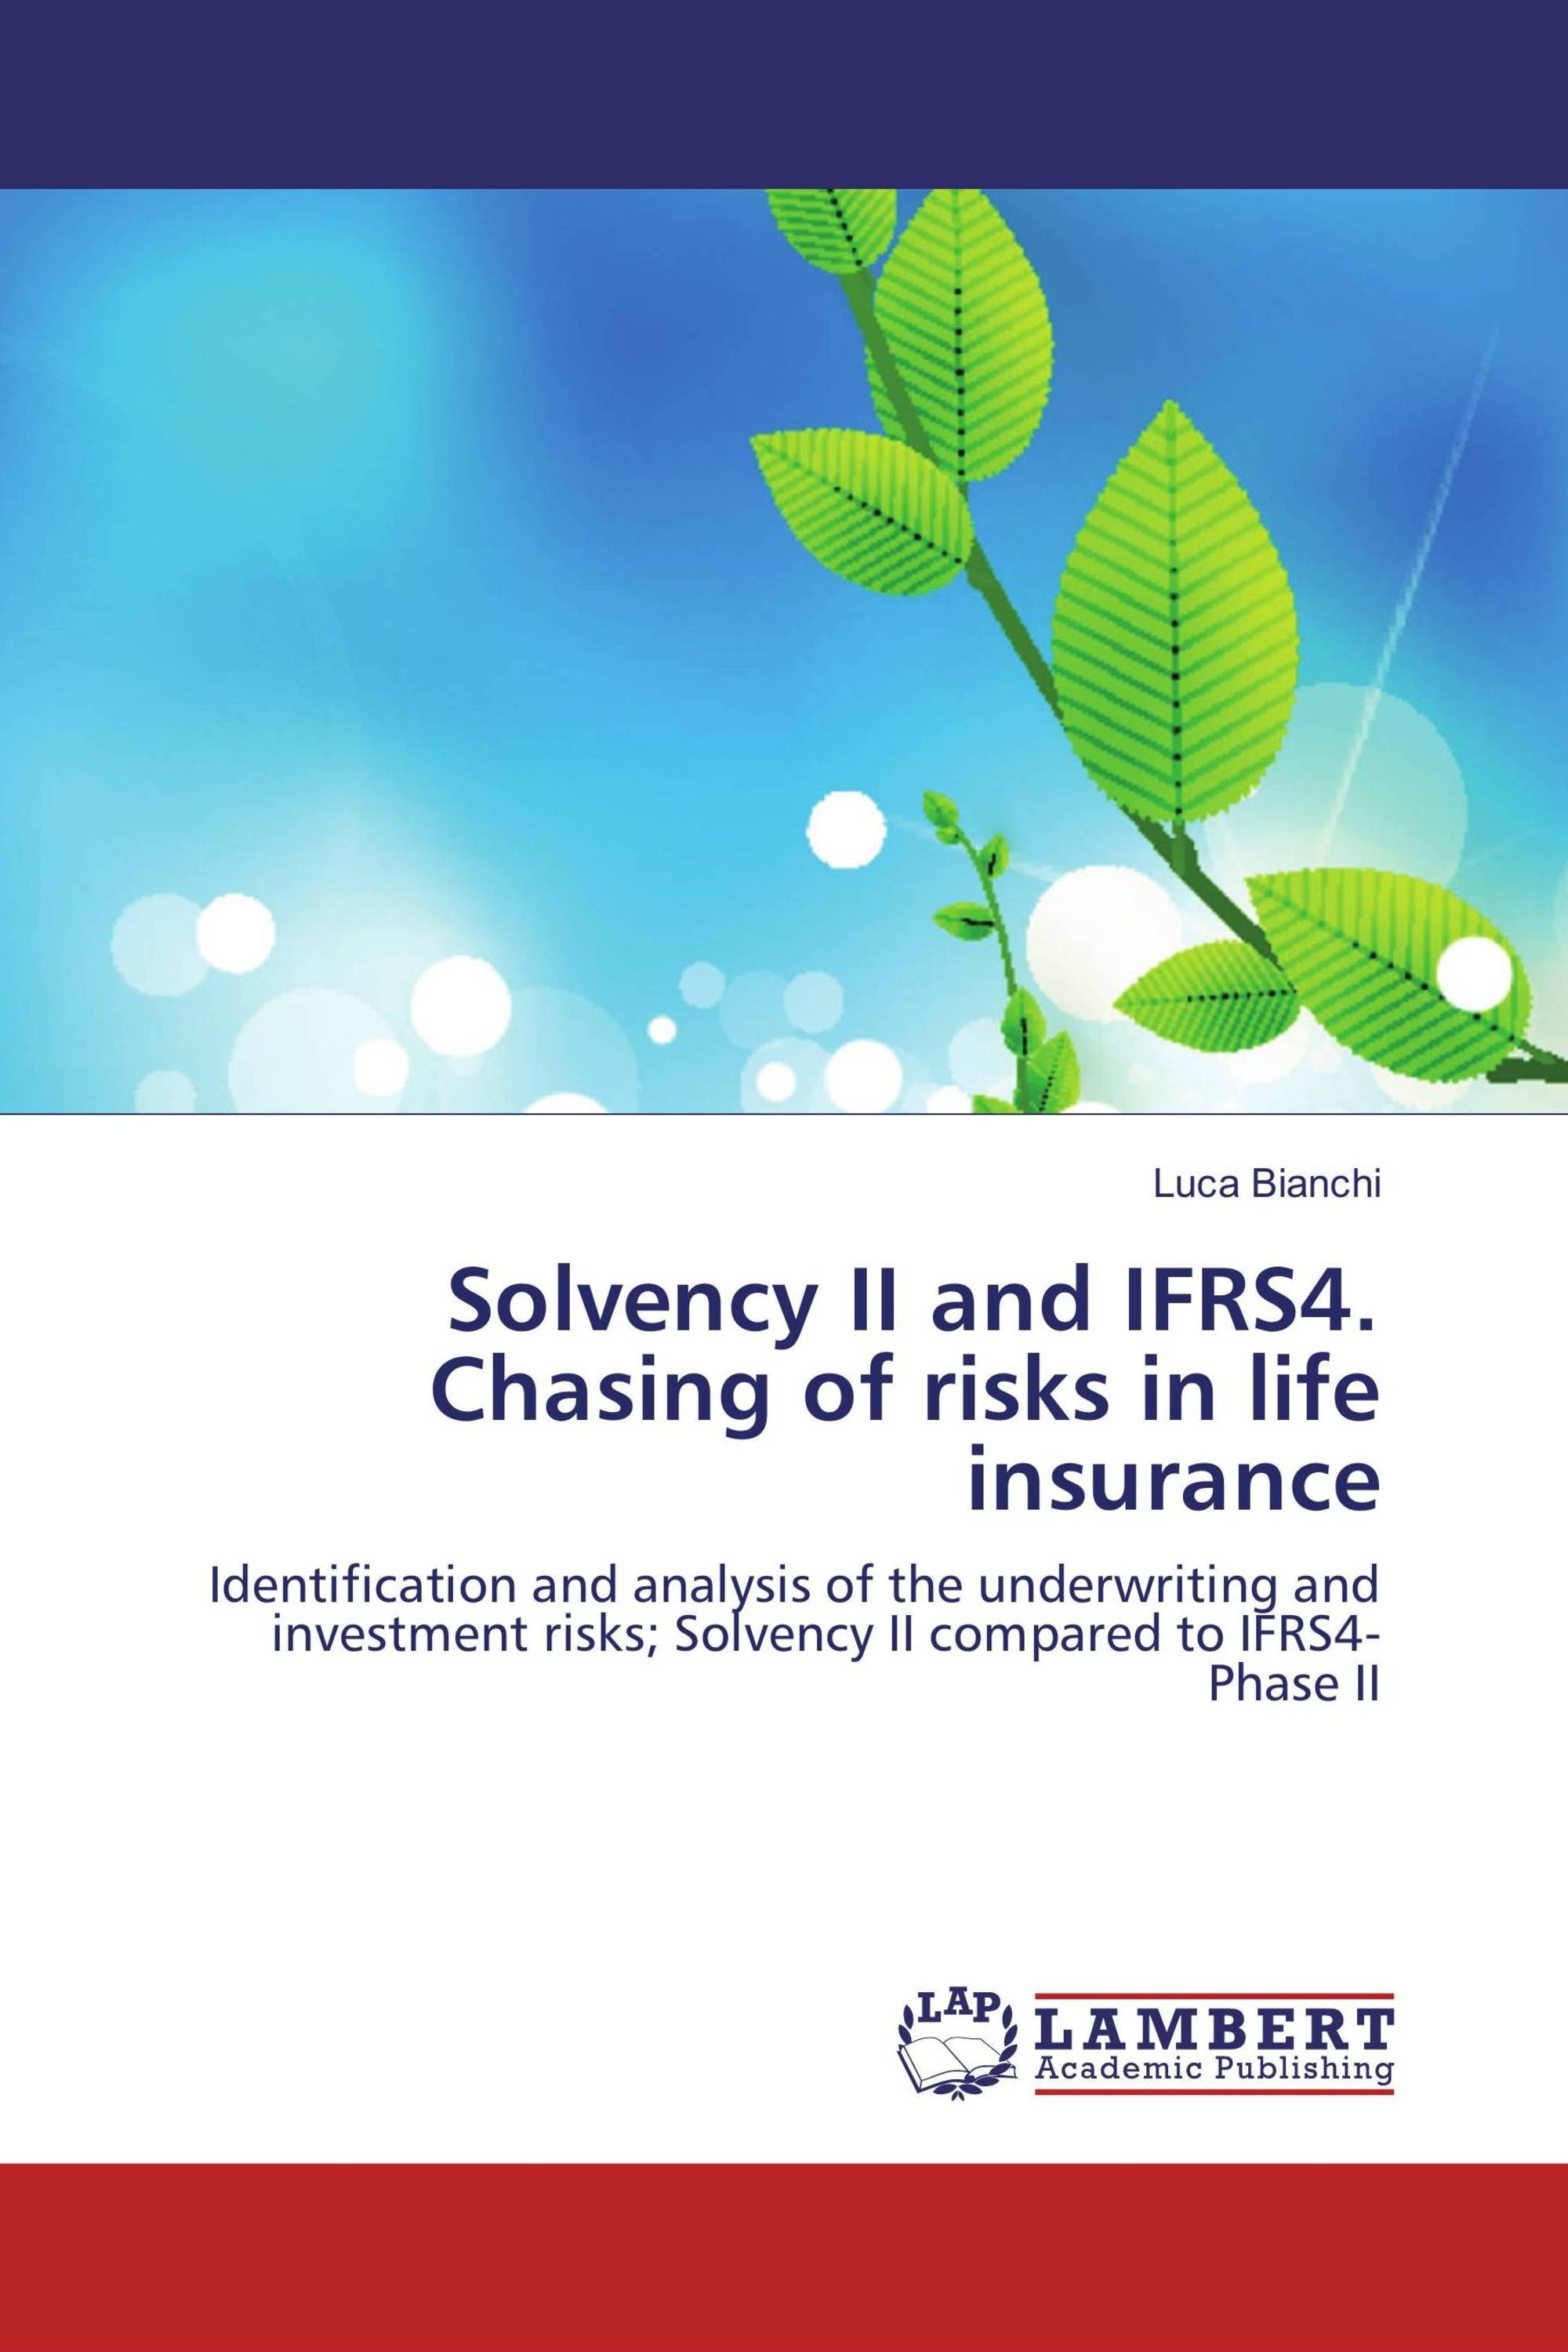 Solvency II and IFRS4. Chasing of risks in life insurance